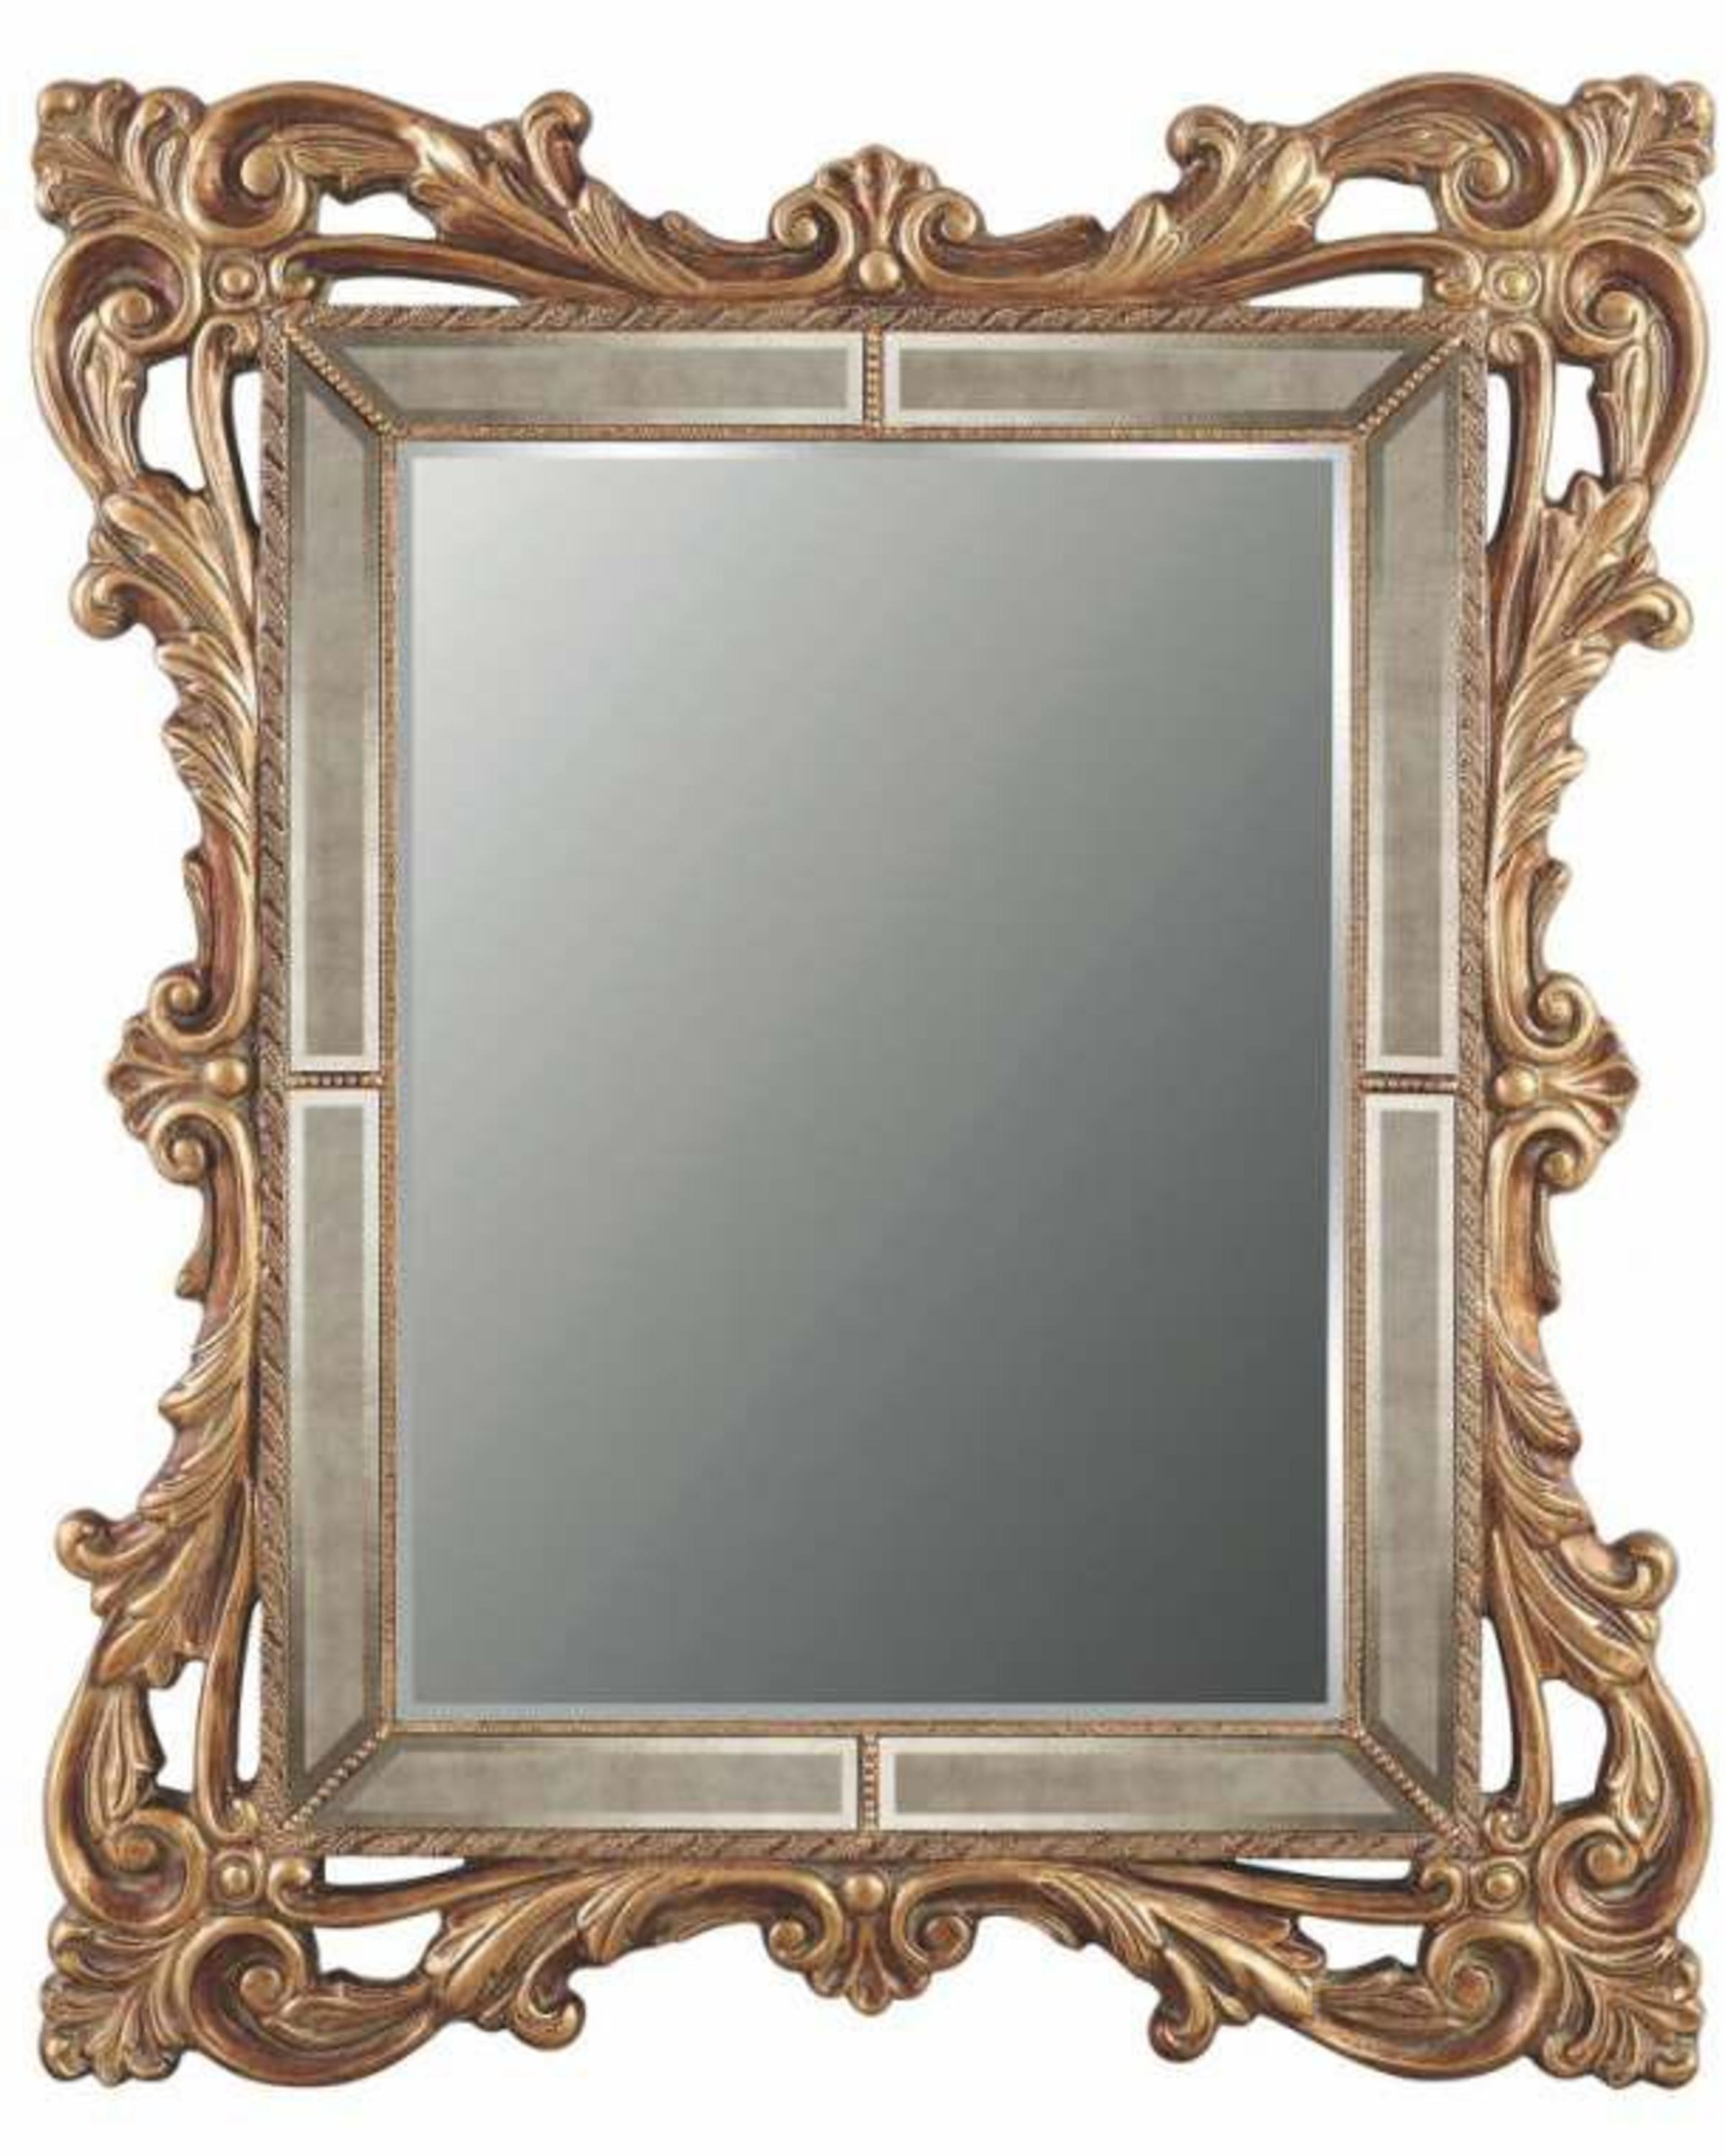 RHEA CLASSIC GOLD MIRROR- ANGIE'S INDIA ANGHI HOMES